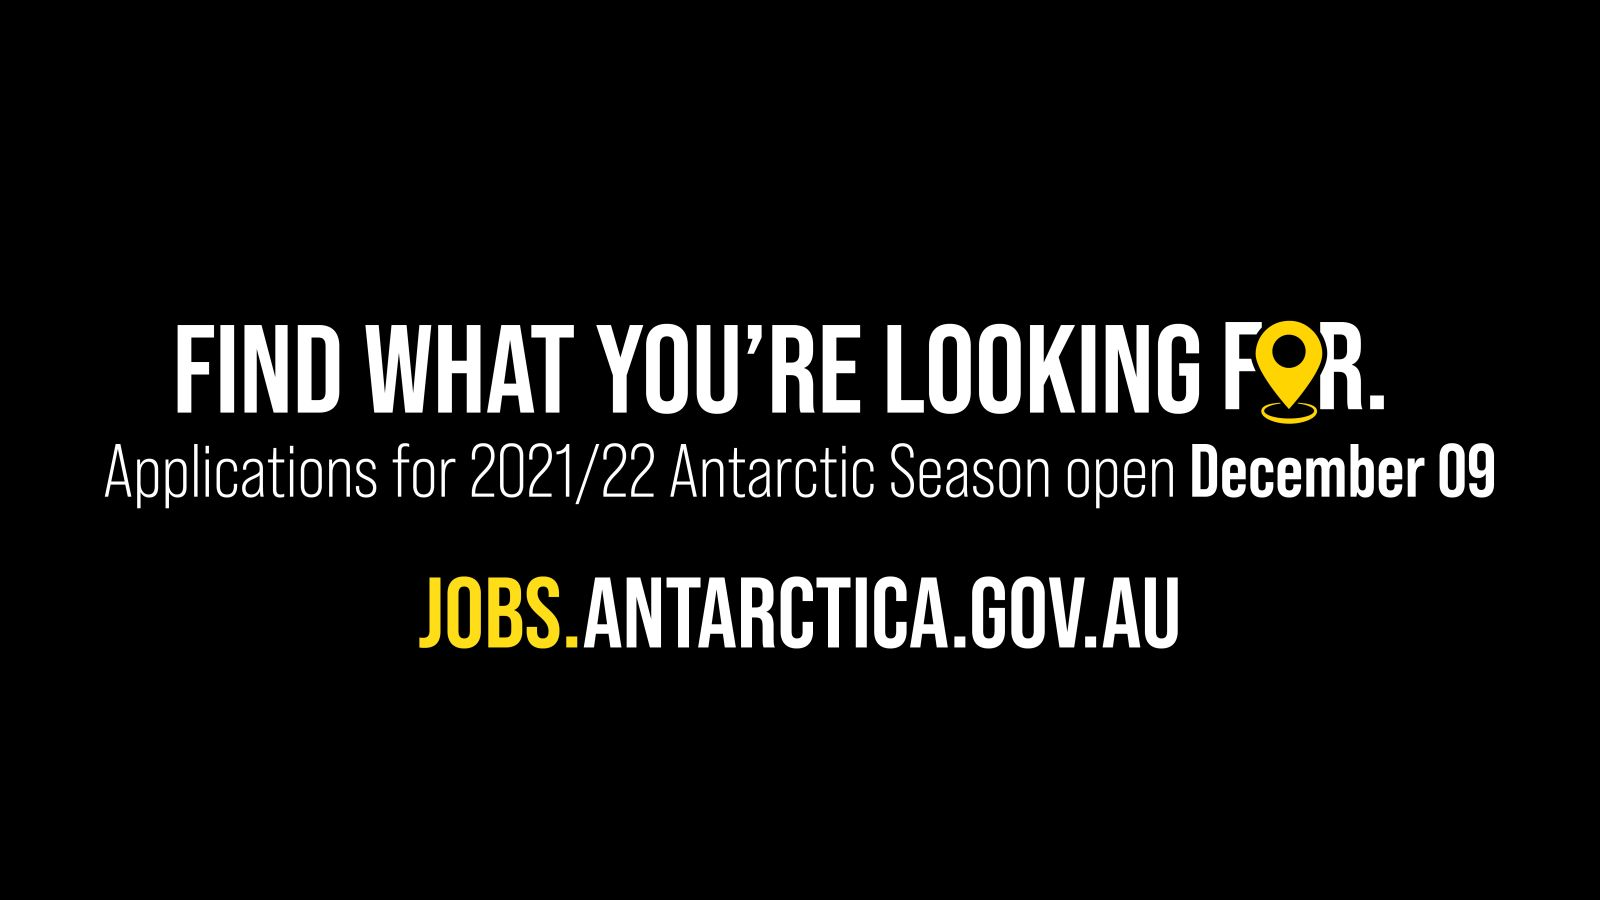 Find what you're looking for. Applications for 2021/22 Antarctic Season open December 9.